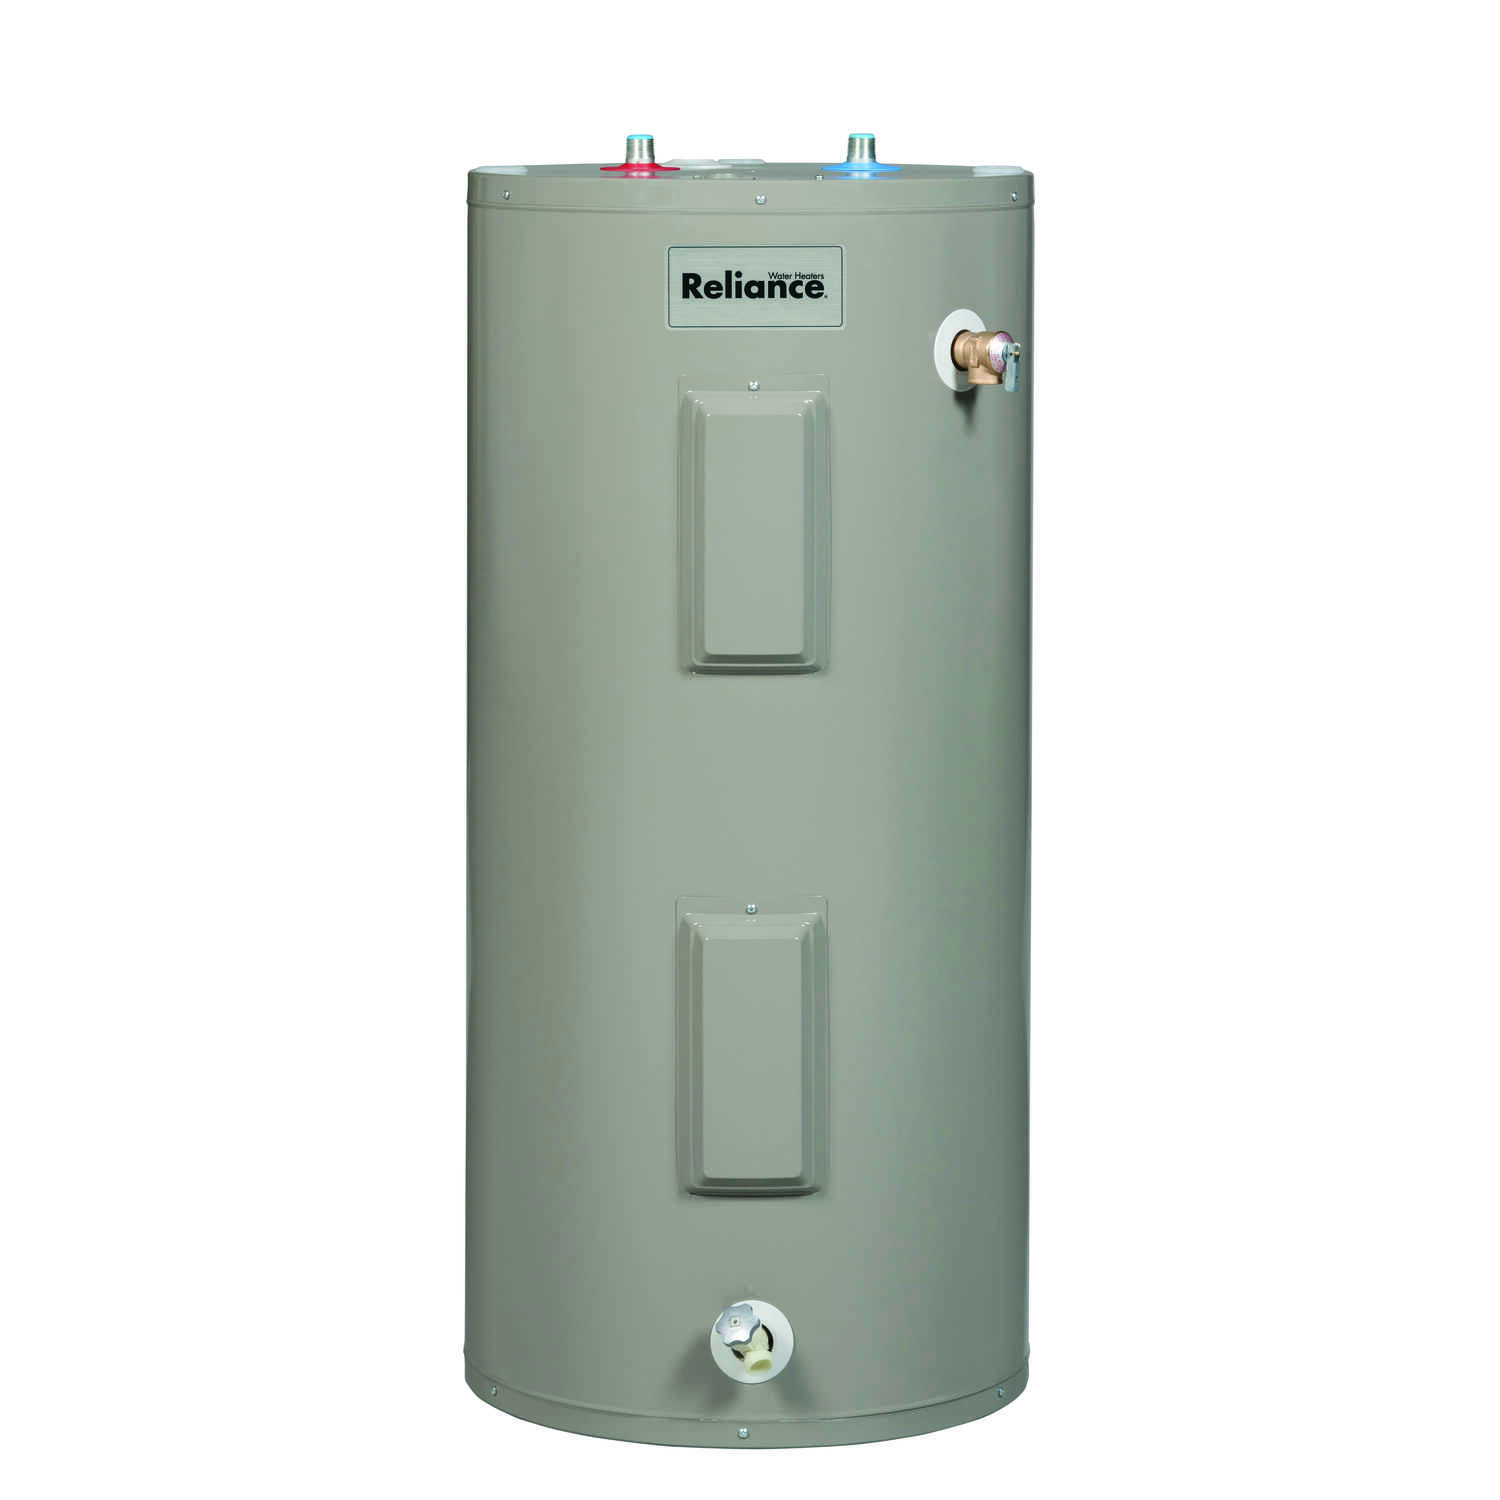 Reliance 50 Gal Electric Water Heater Ace Hardware